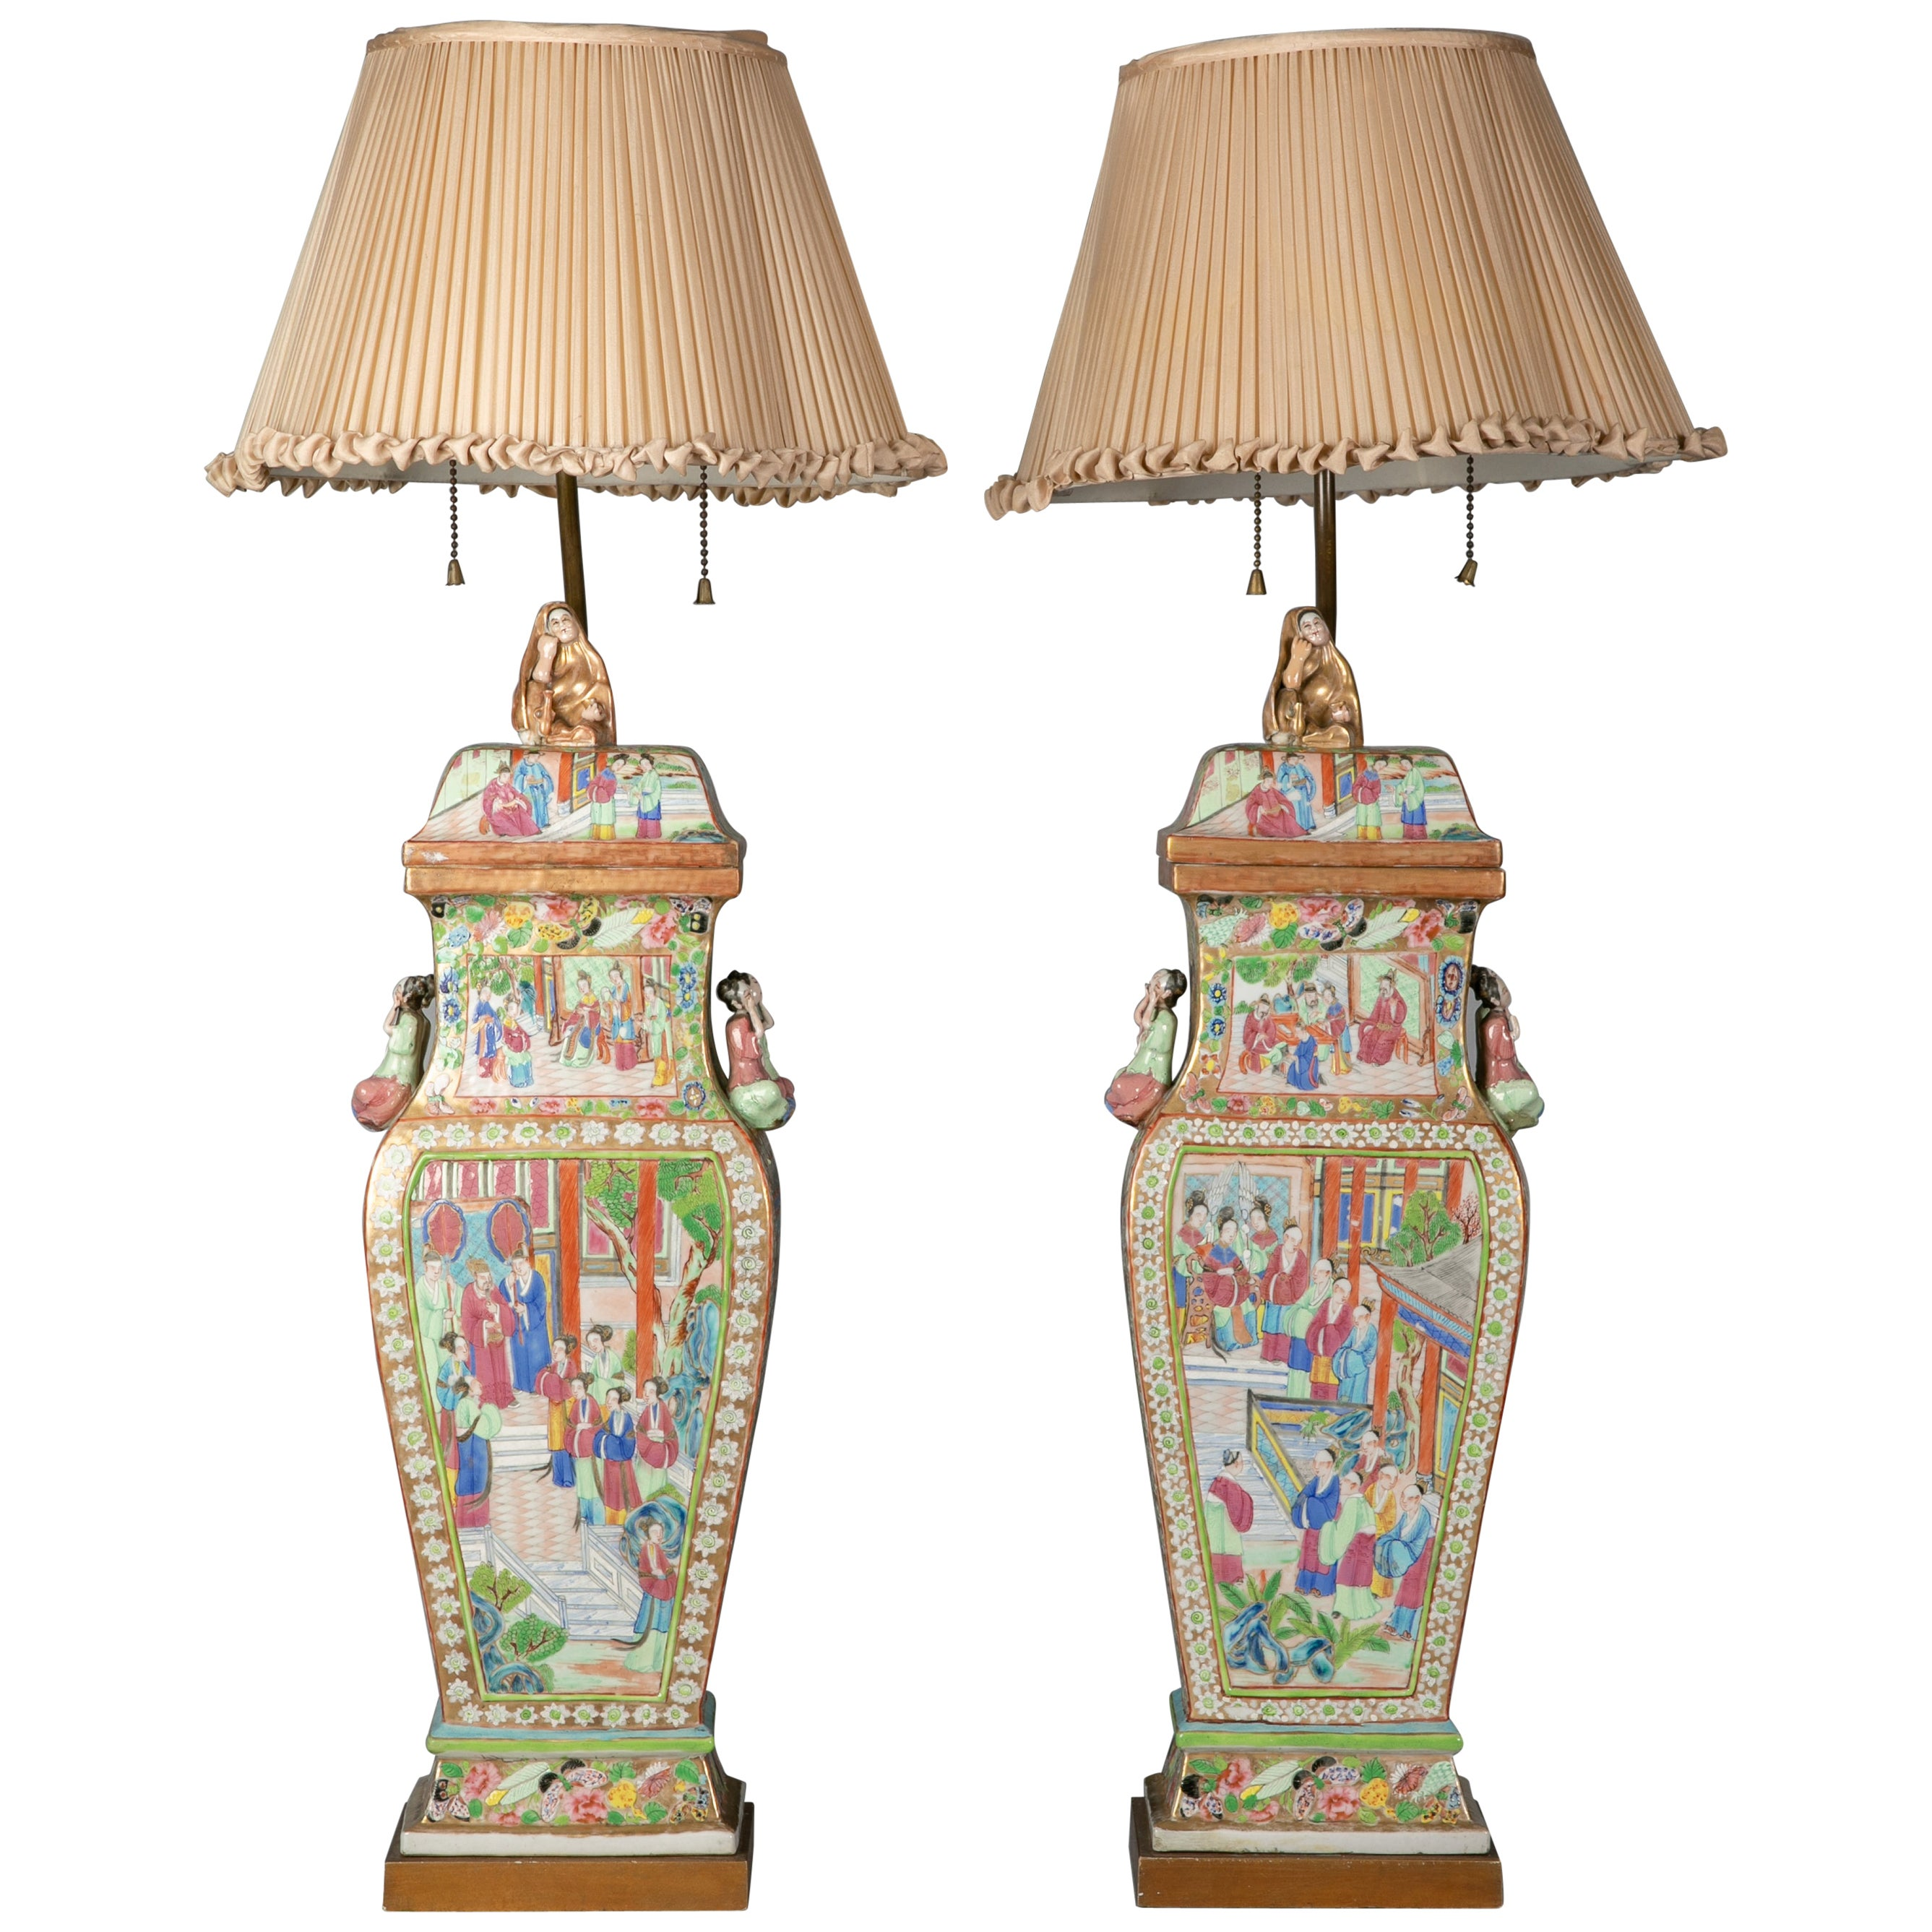 Pair of Fine Chinese Porcelain Rose Mandarin Covered Vases as Lamps, circa 1840